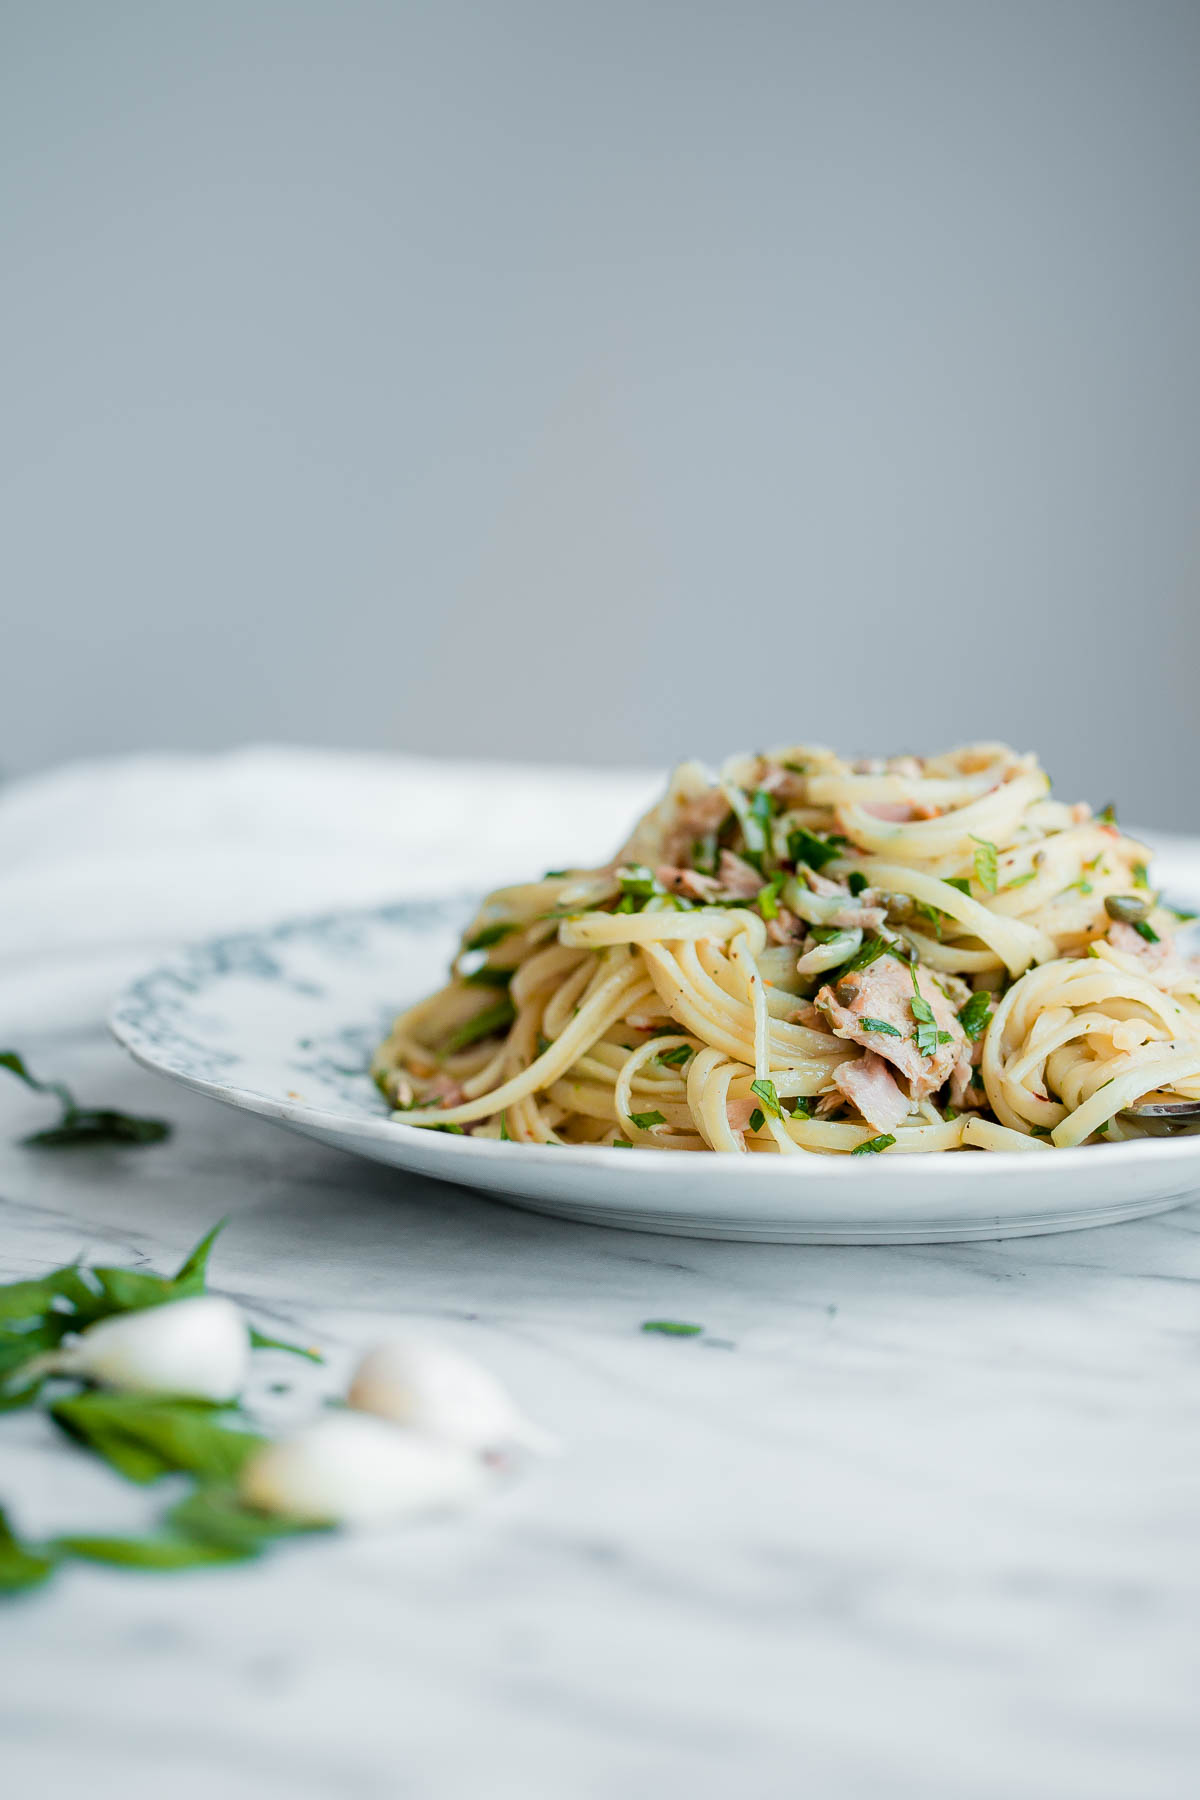 Tuna Pasta with Capers and Parsley - a fresh and EASY weeknight pasta recipe made with canned tuna!